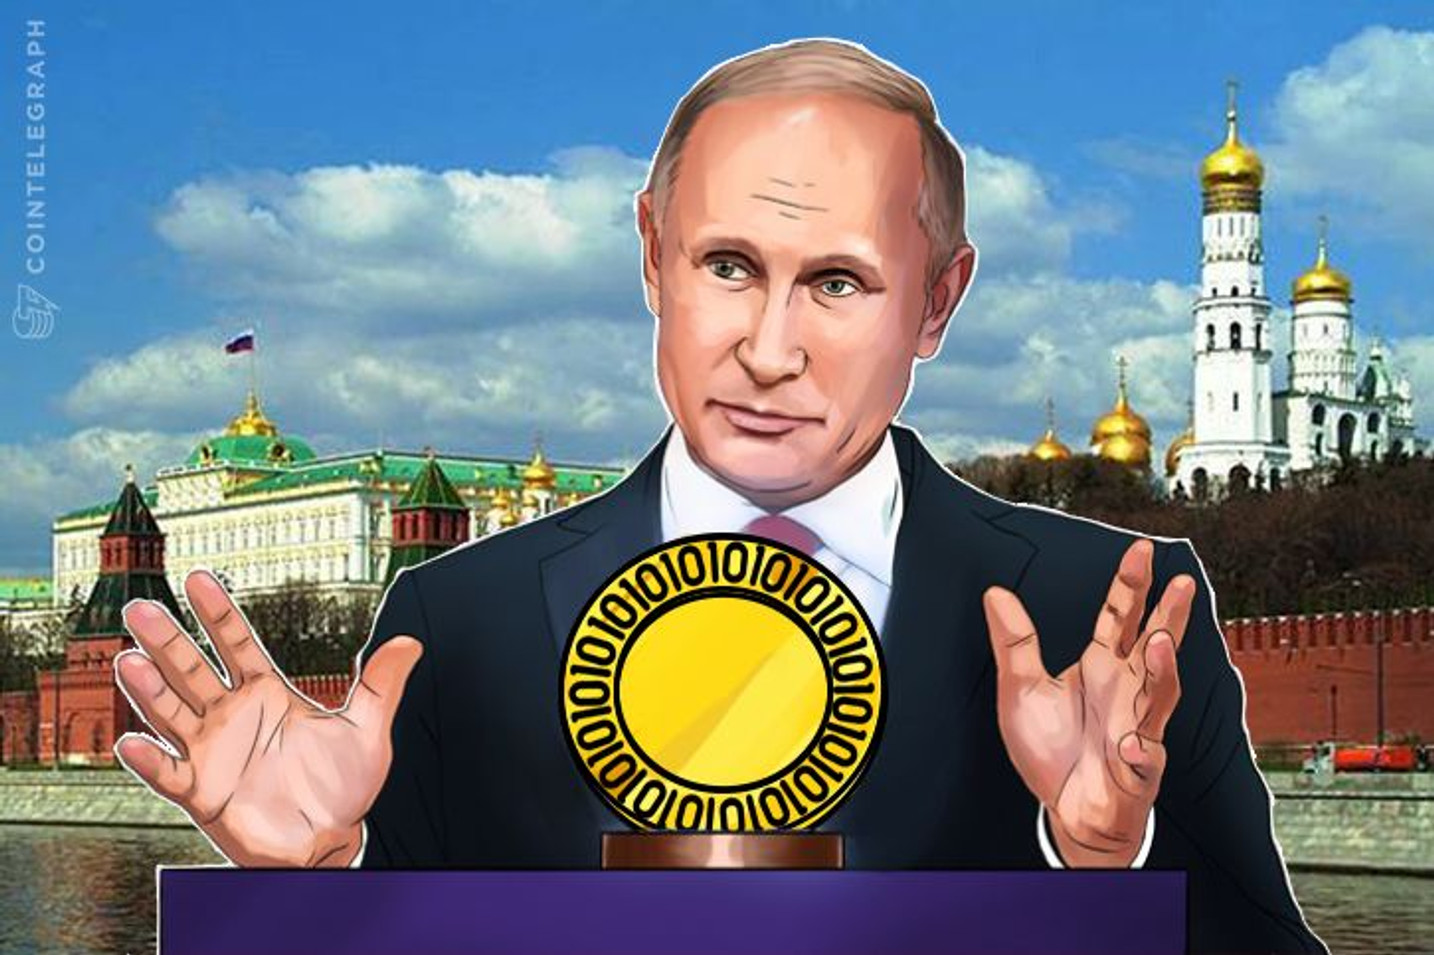 Putin Adviser Says 'CryptoRuble' Will Circumvent Sanctions, Government Remains Divided